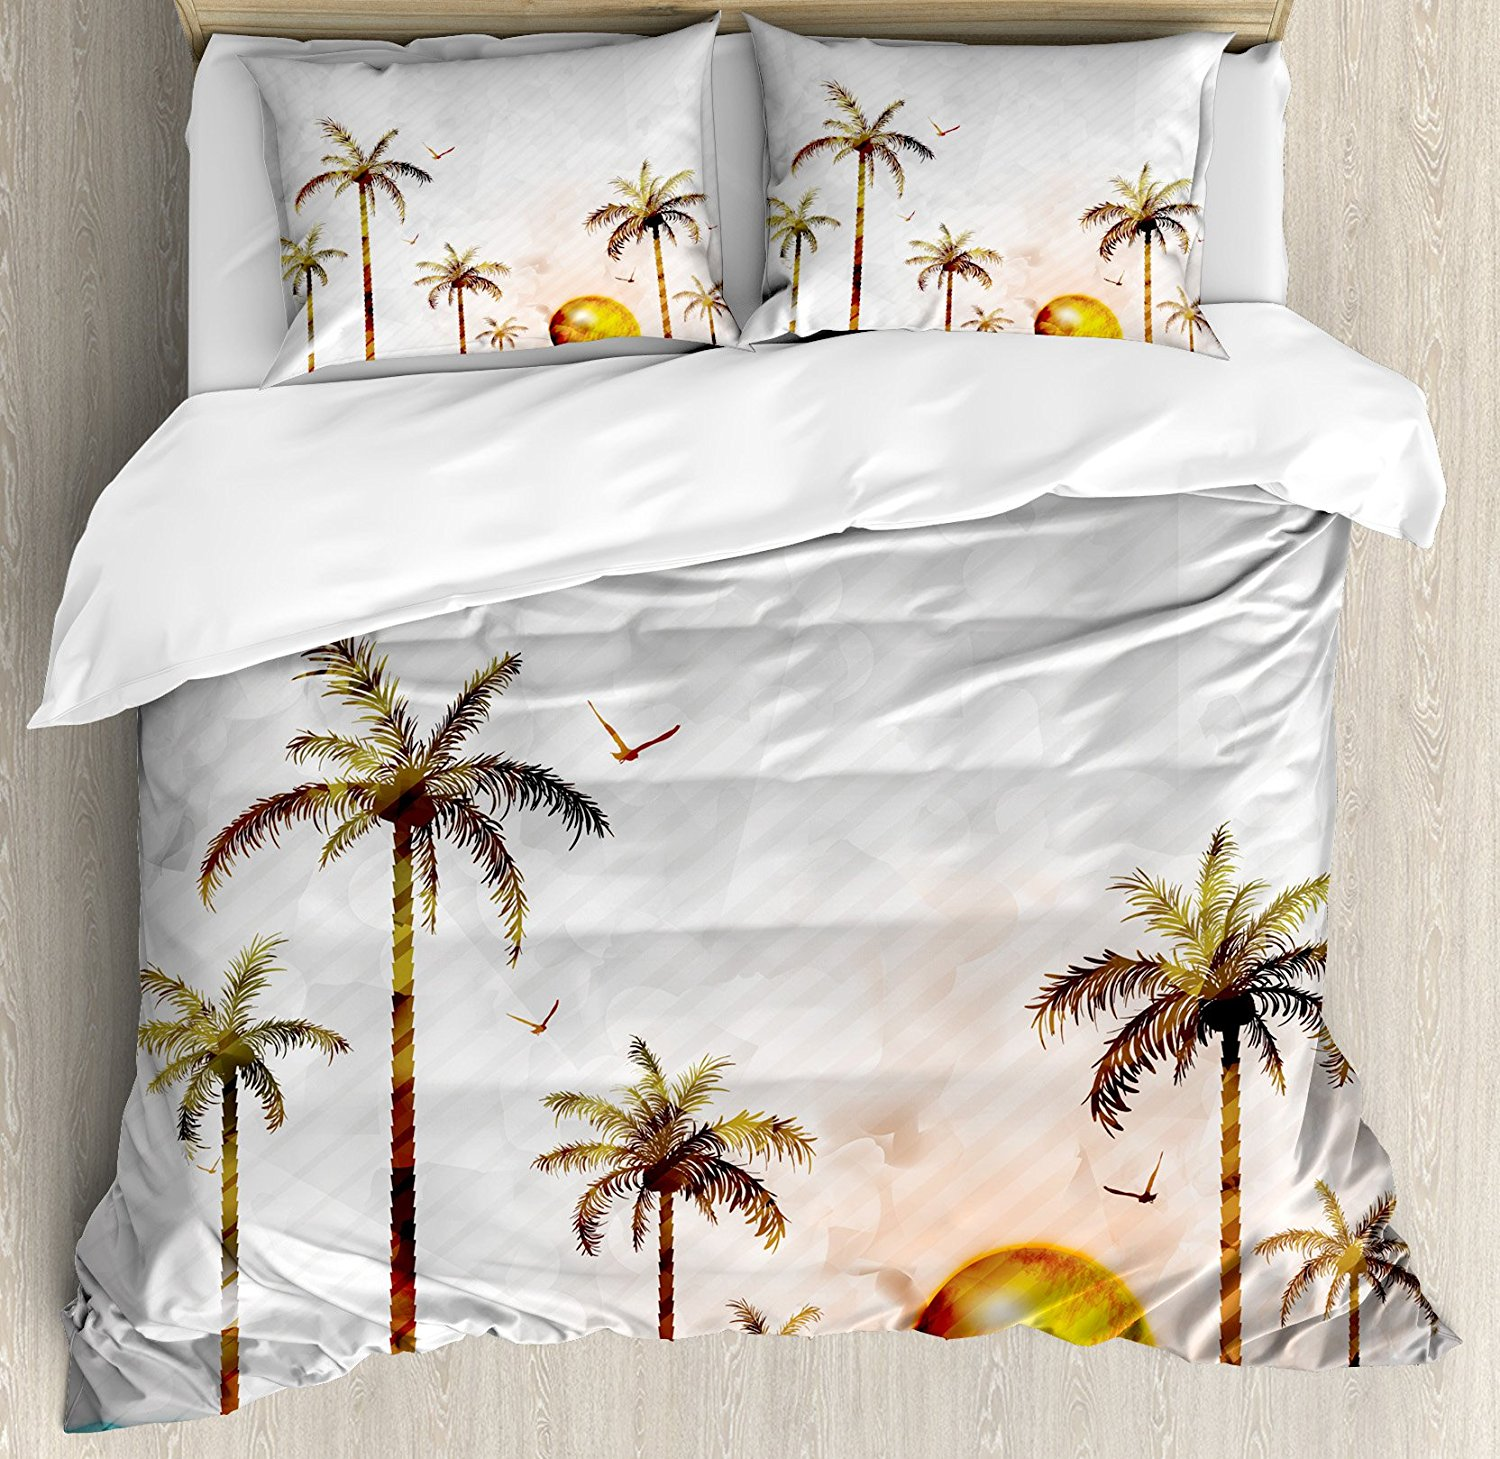 Hawaiian Duvet Cover Set Watercolor Style Tropical Island with Coconut Trees and Birds Sunset Art Print 4 Piece Bedding Set